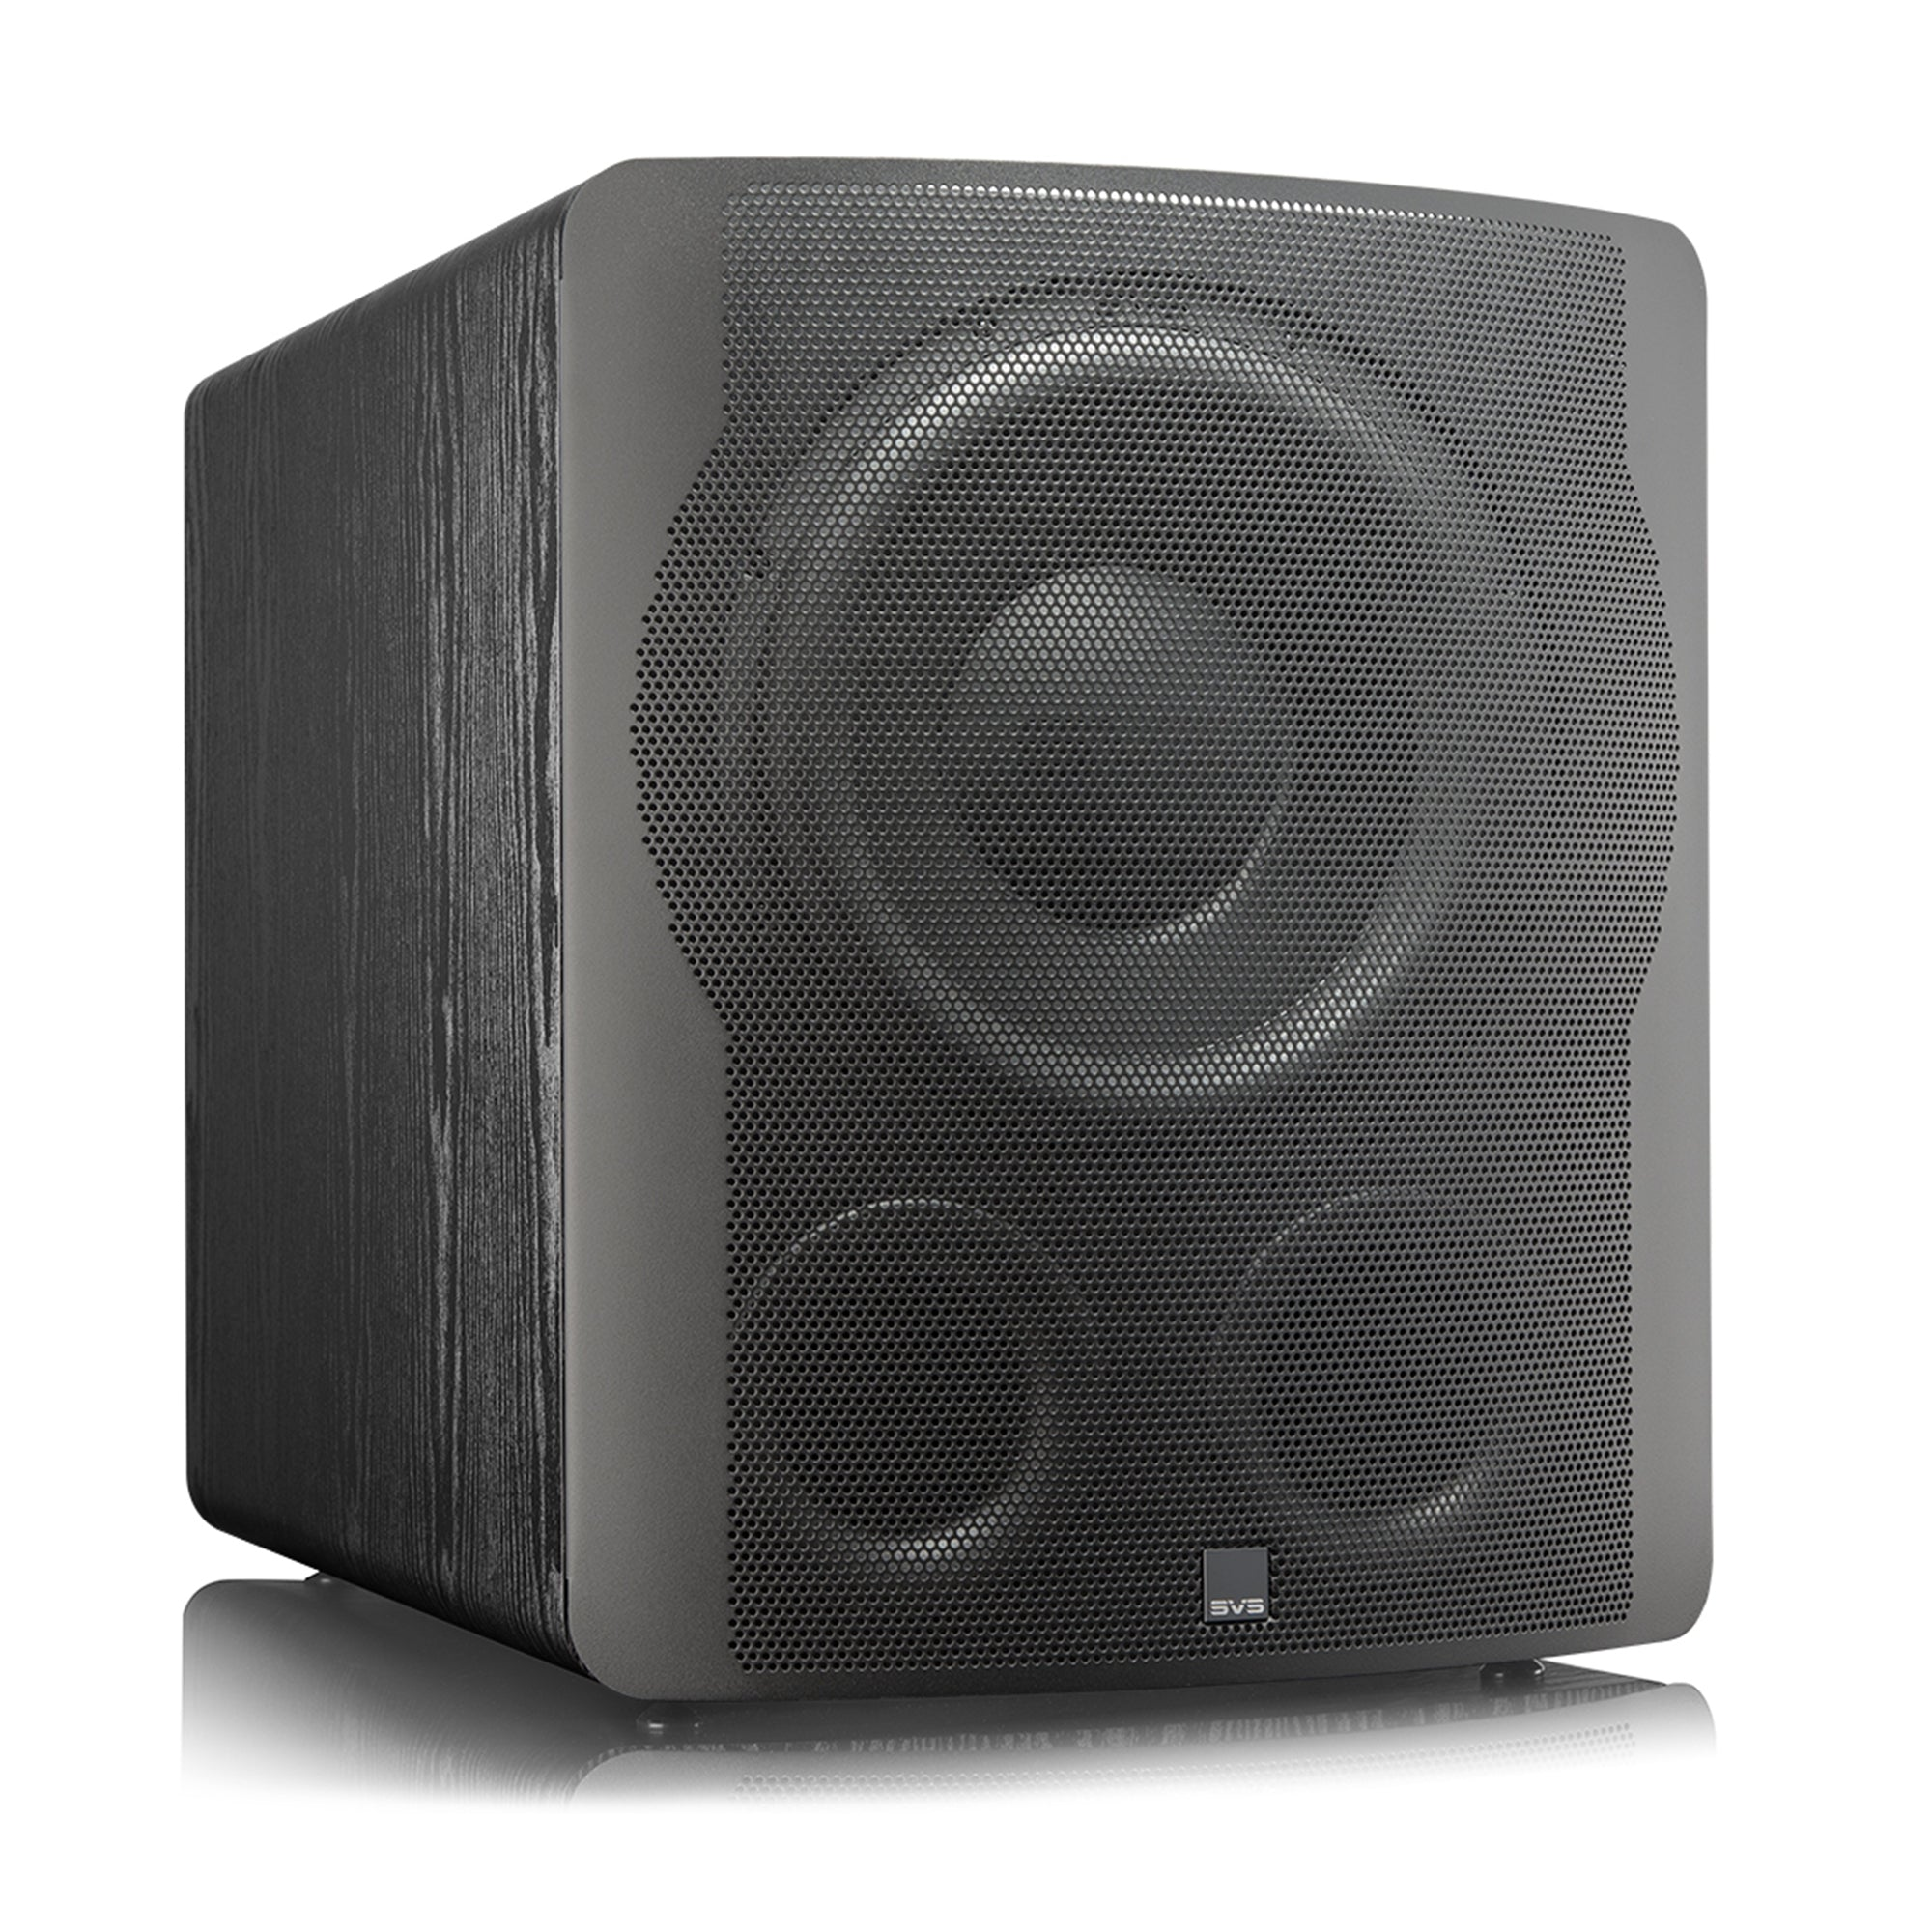 SVS PB-3000 Ported Box Home Subwoofer